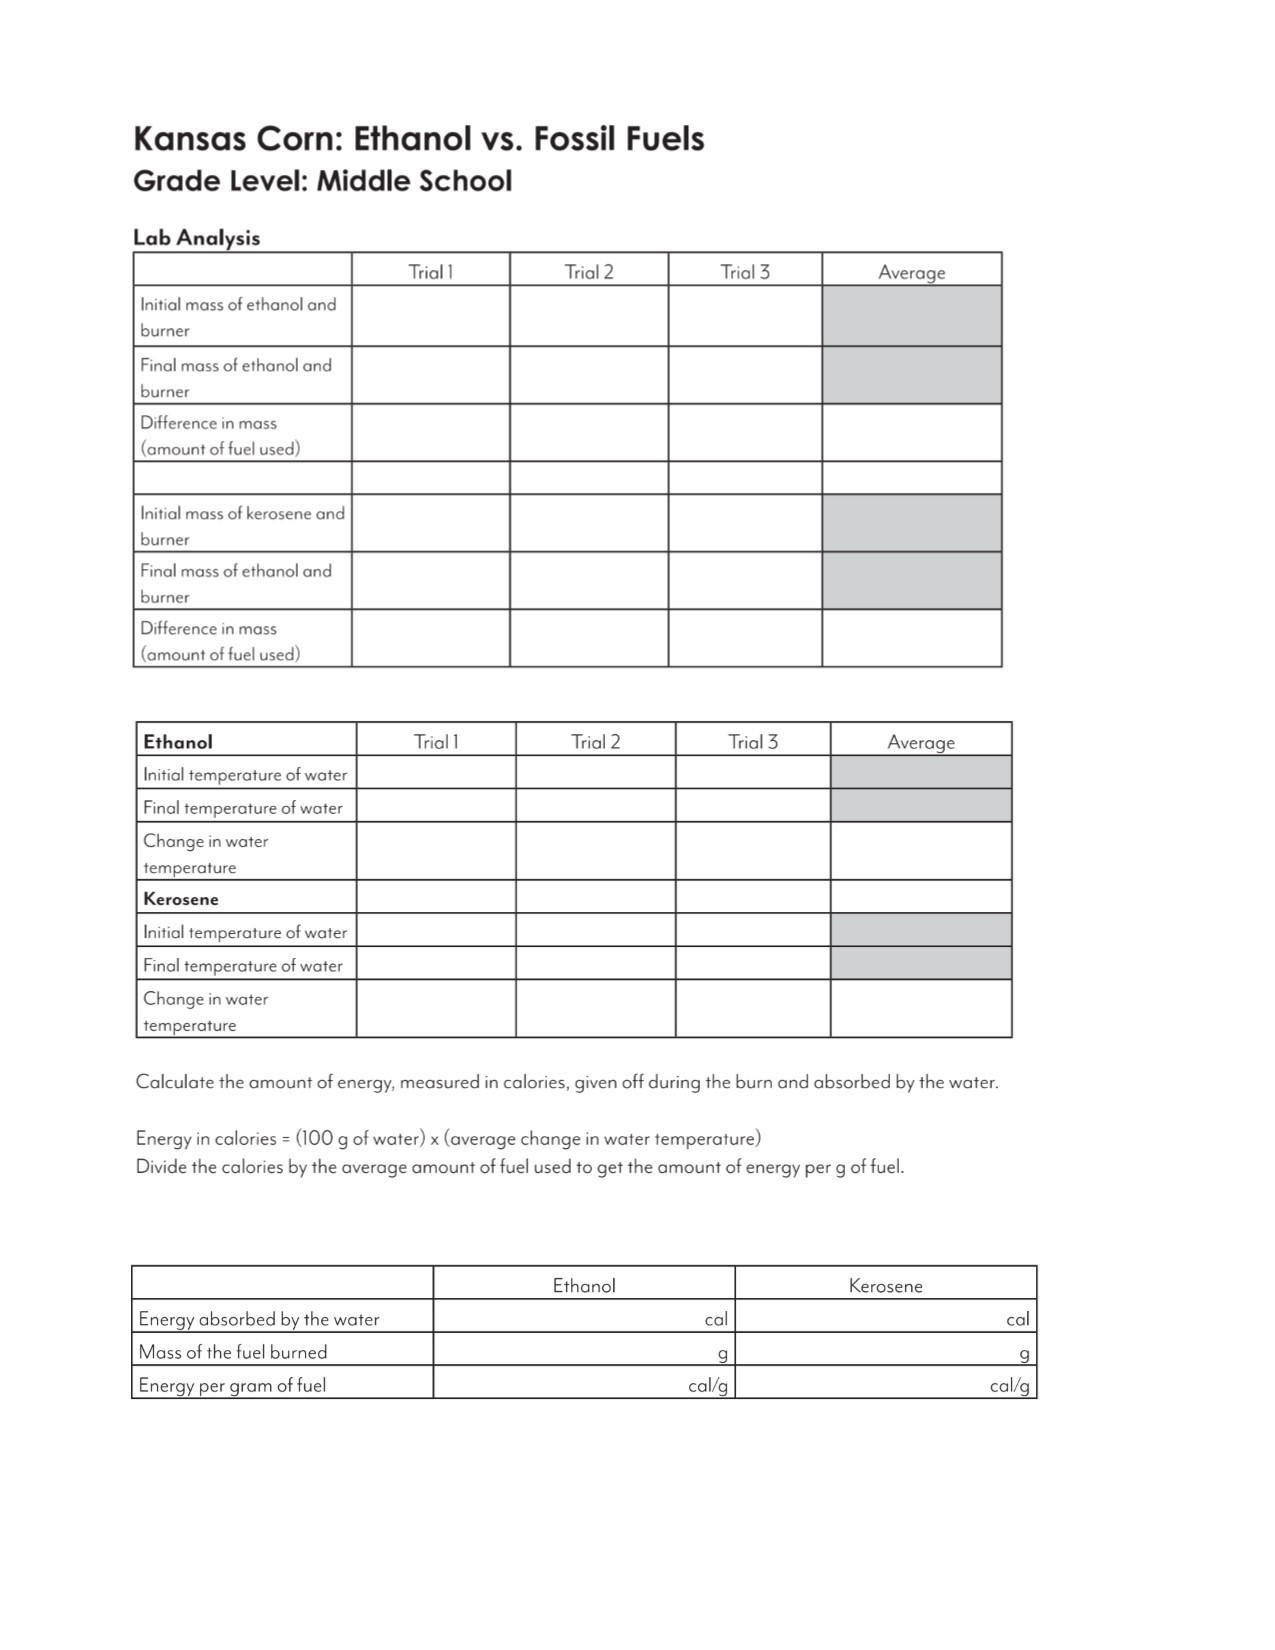 Fossil Fuels Worksheet Middle School Ethanol Vs Fossil Fuels